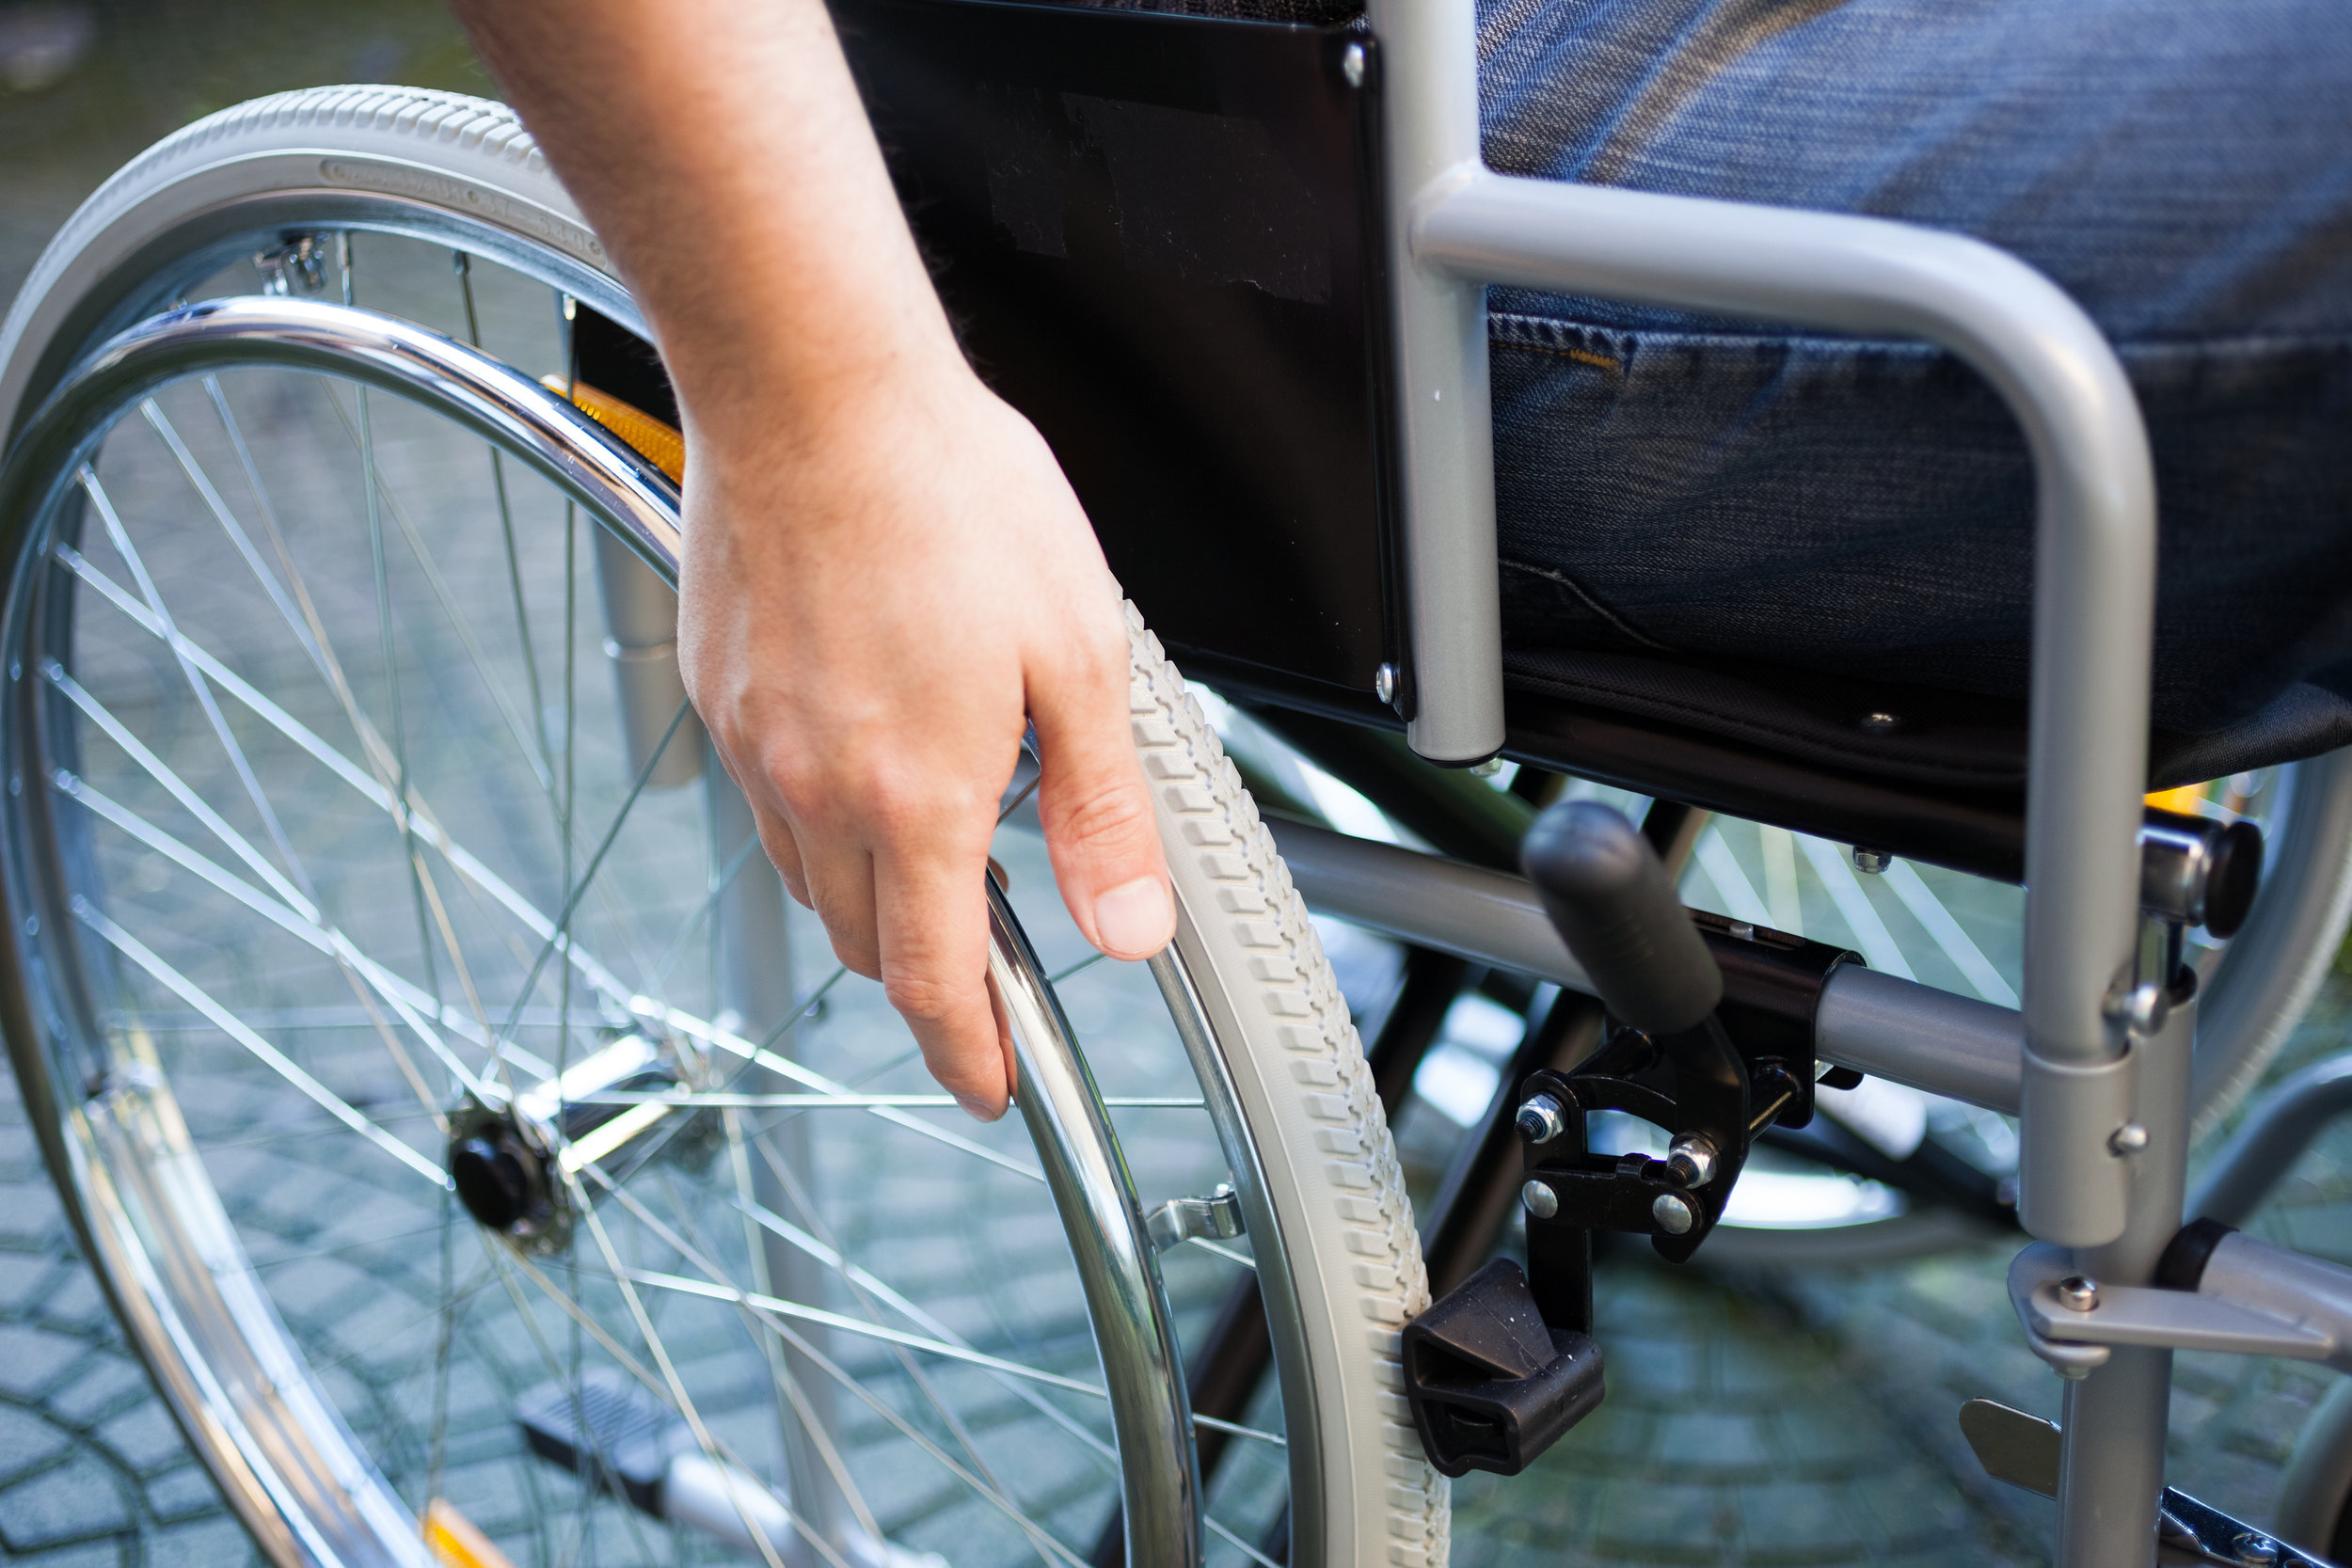 bigstock-Paralyzed-man-using-his-wheelc-60716945.jpg